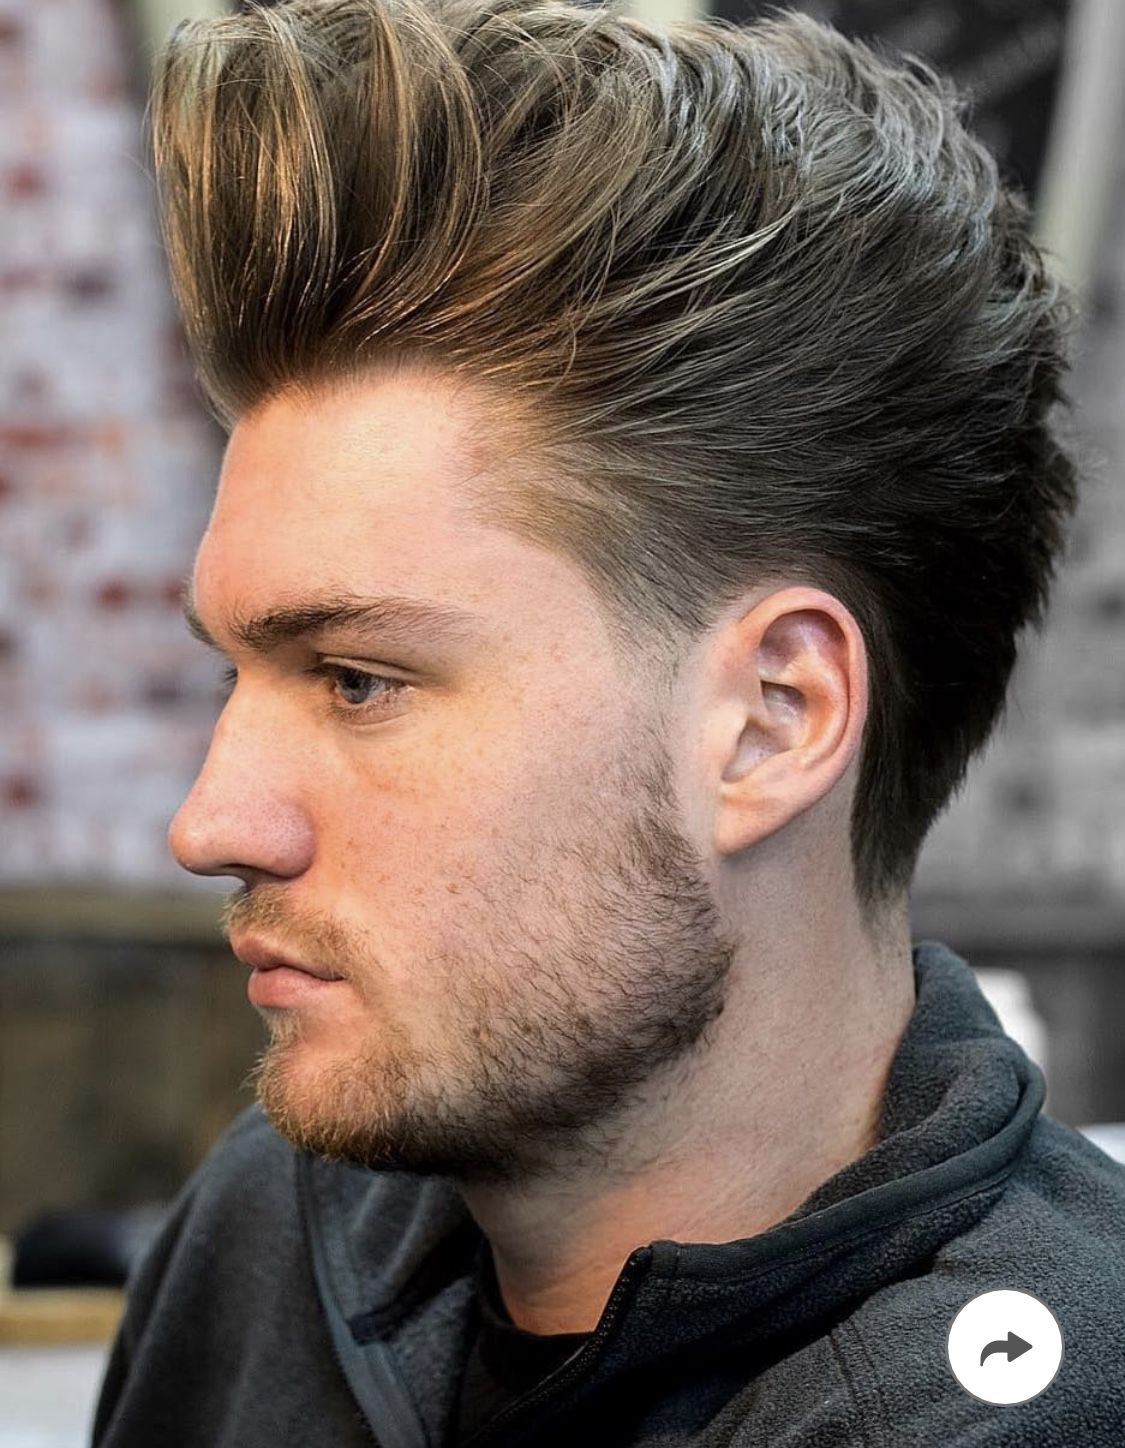 Pin By Jacob Dean On Hairstyles Pompadour Haircut Long Hair Styles Men Side Part Haircut